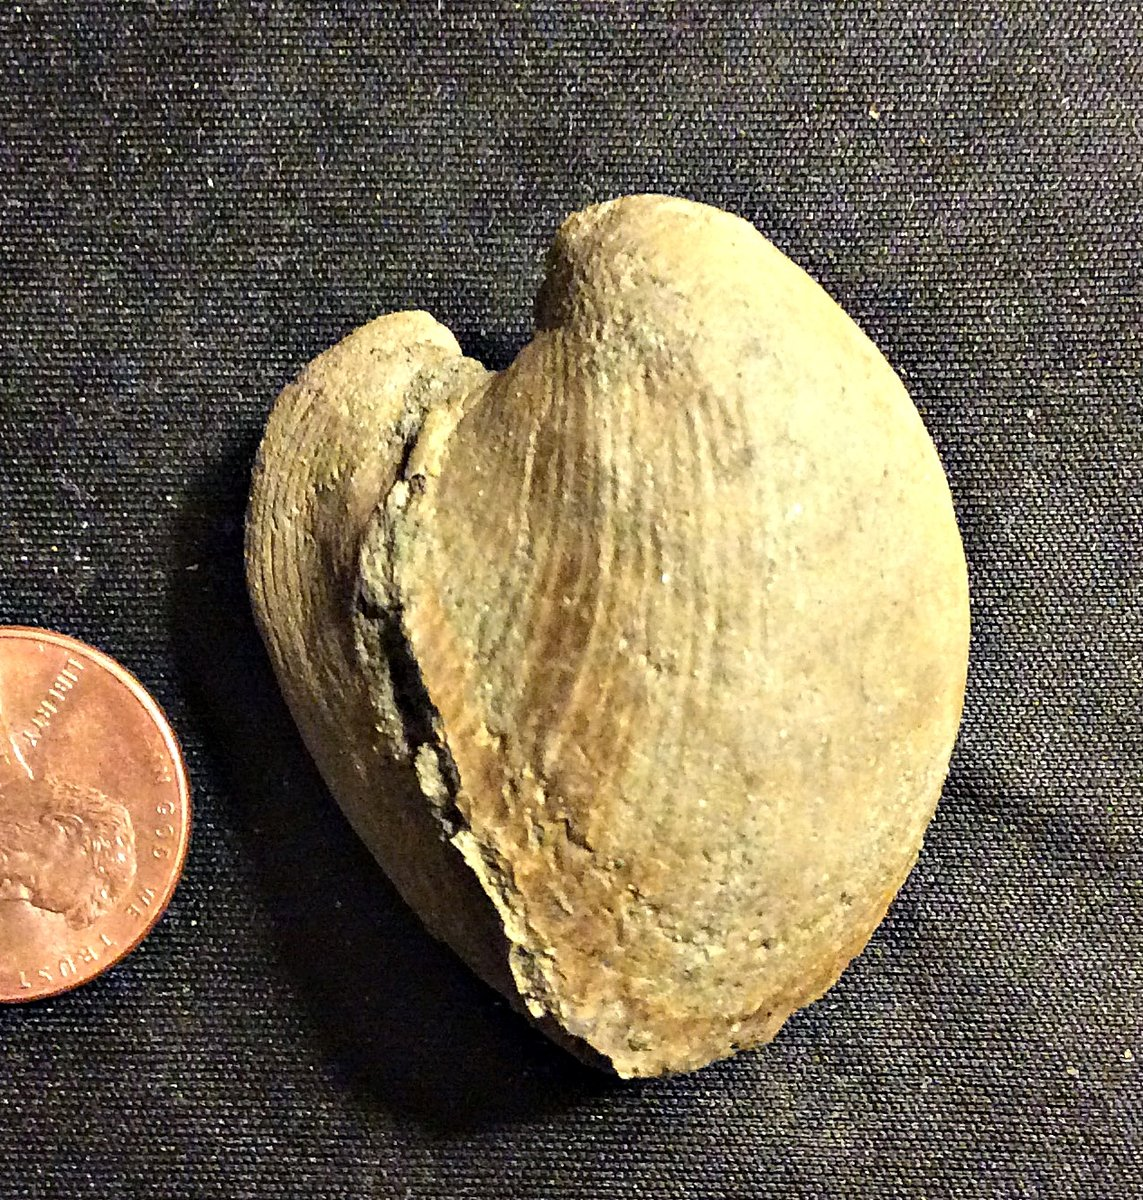 A Cast of a Bivalve Shell from the Merchantville Formation, N.J.